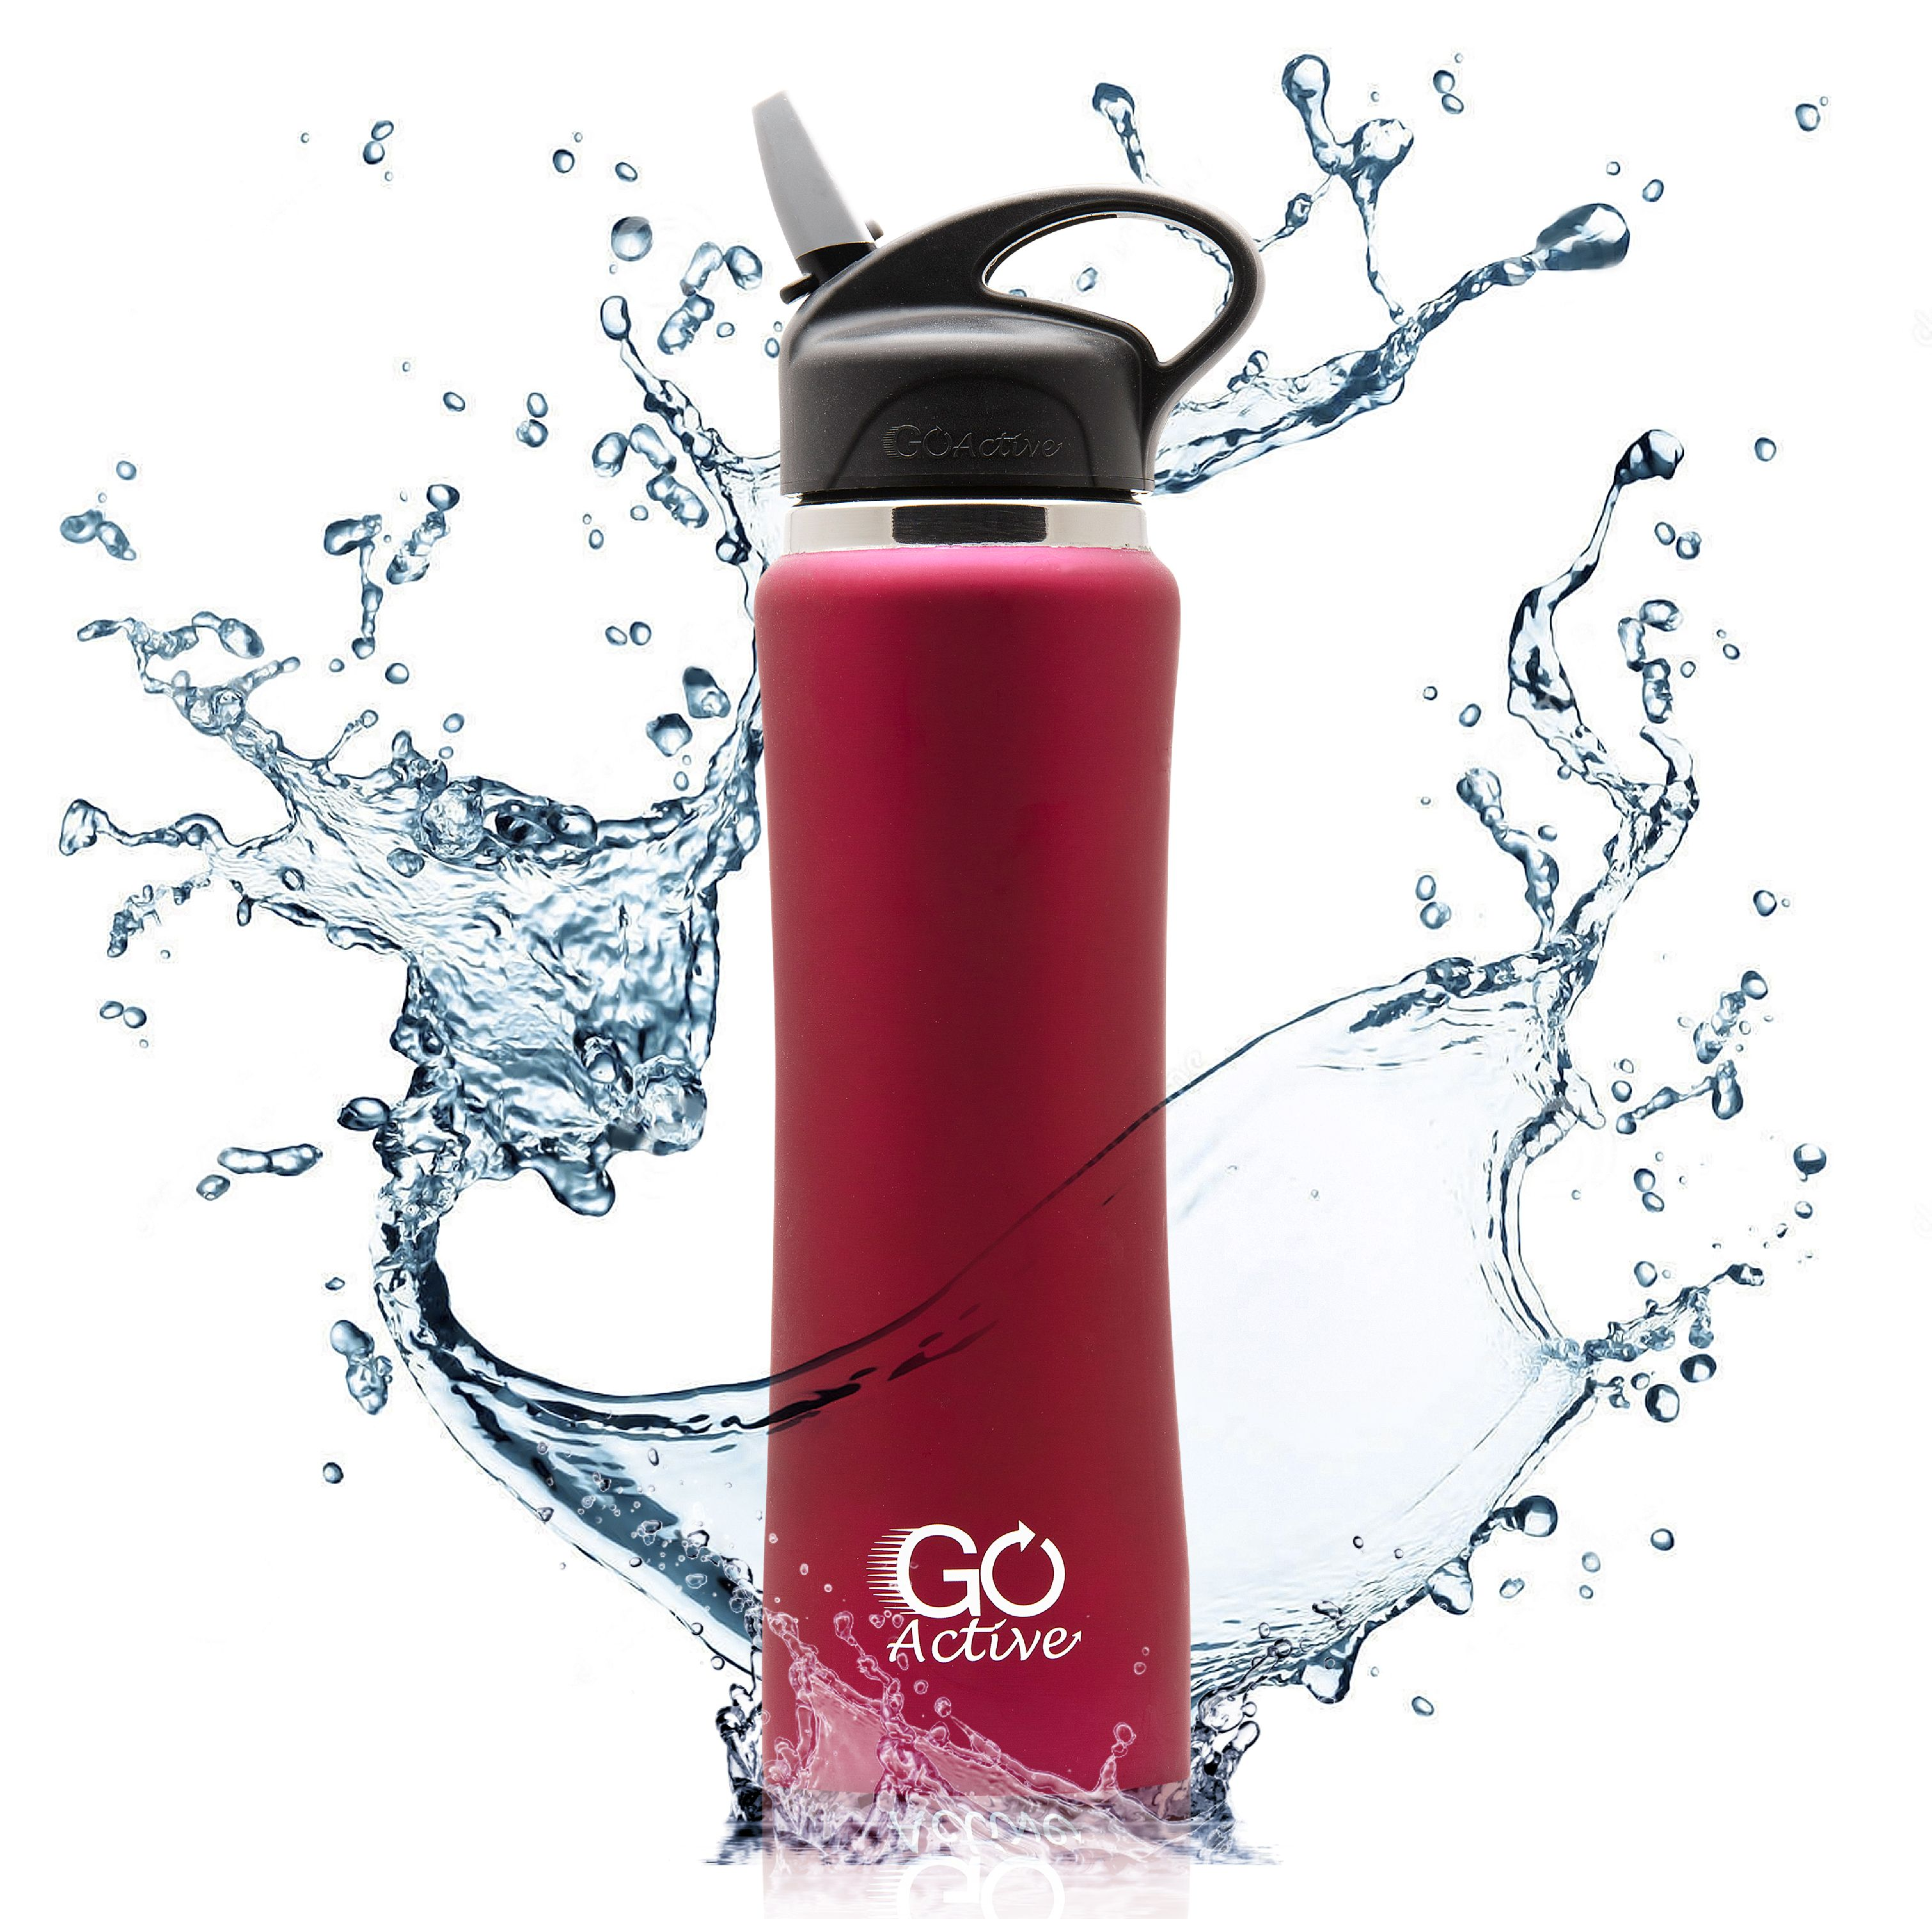 GO Active - Insulated Water Bottle with Straw. Stainless Steel Sport Bottle is Leak Proof, Perfect for Kids, Durable, Vibrant Colors, and keeps ice over 24 hours! 24oz and 1 Liter size